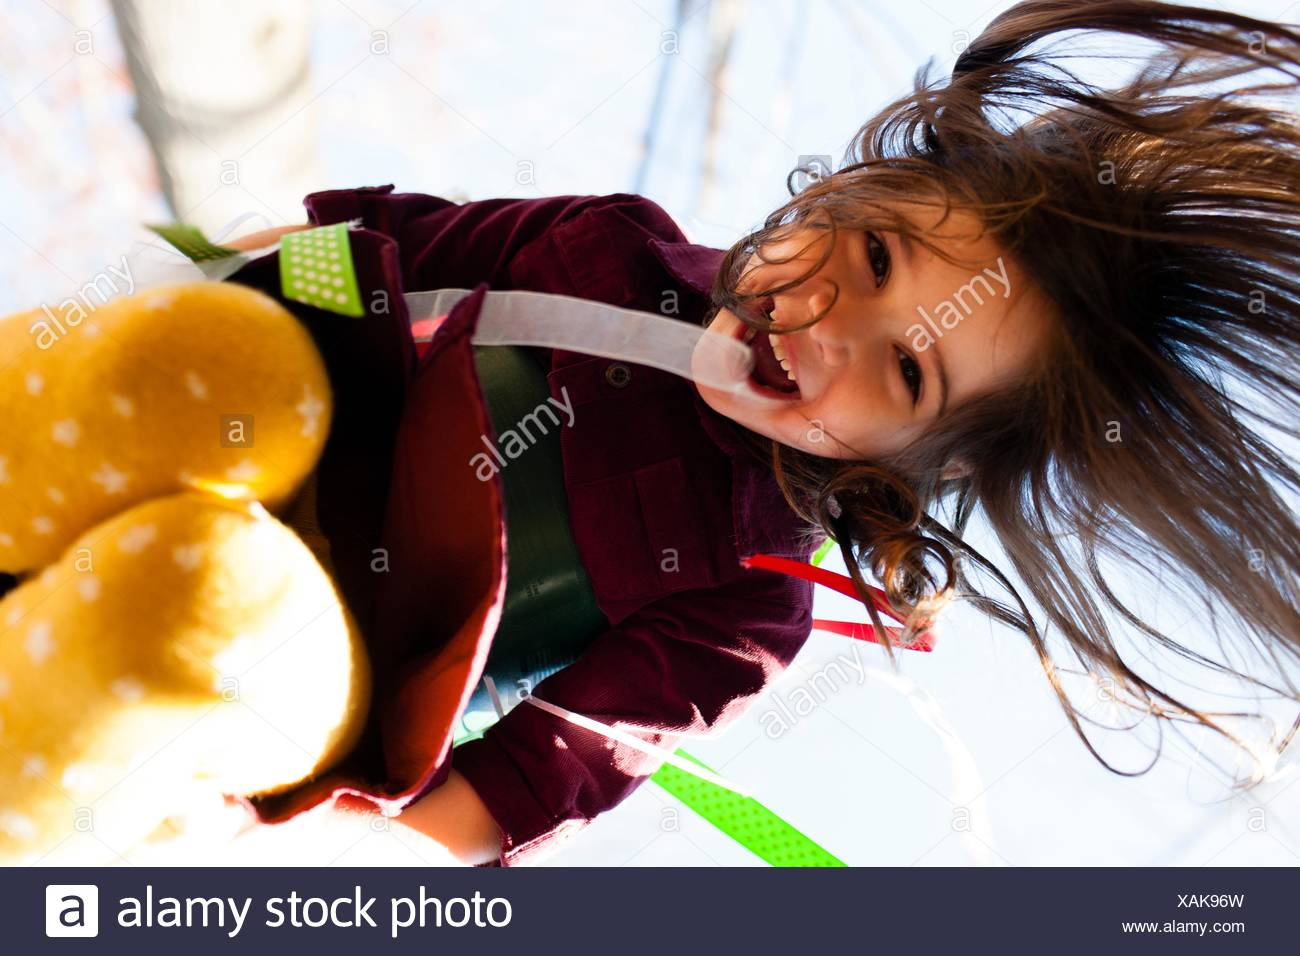 Low angle view of girl wearing colourful tights playing on swing looking at camera smiling - Stock Image